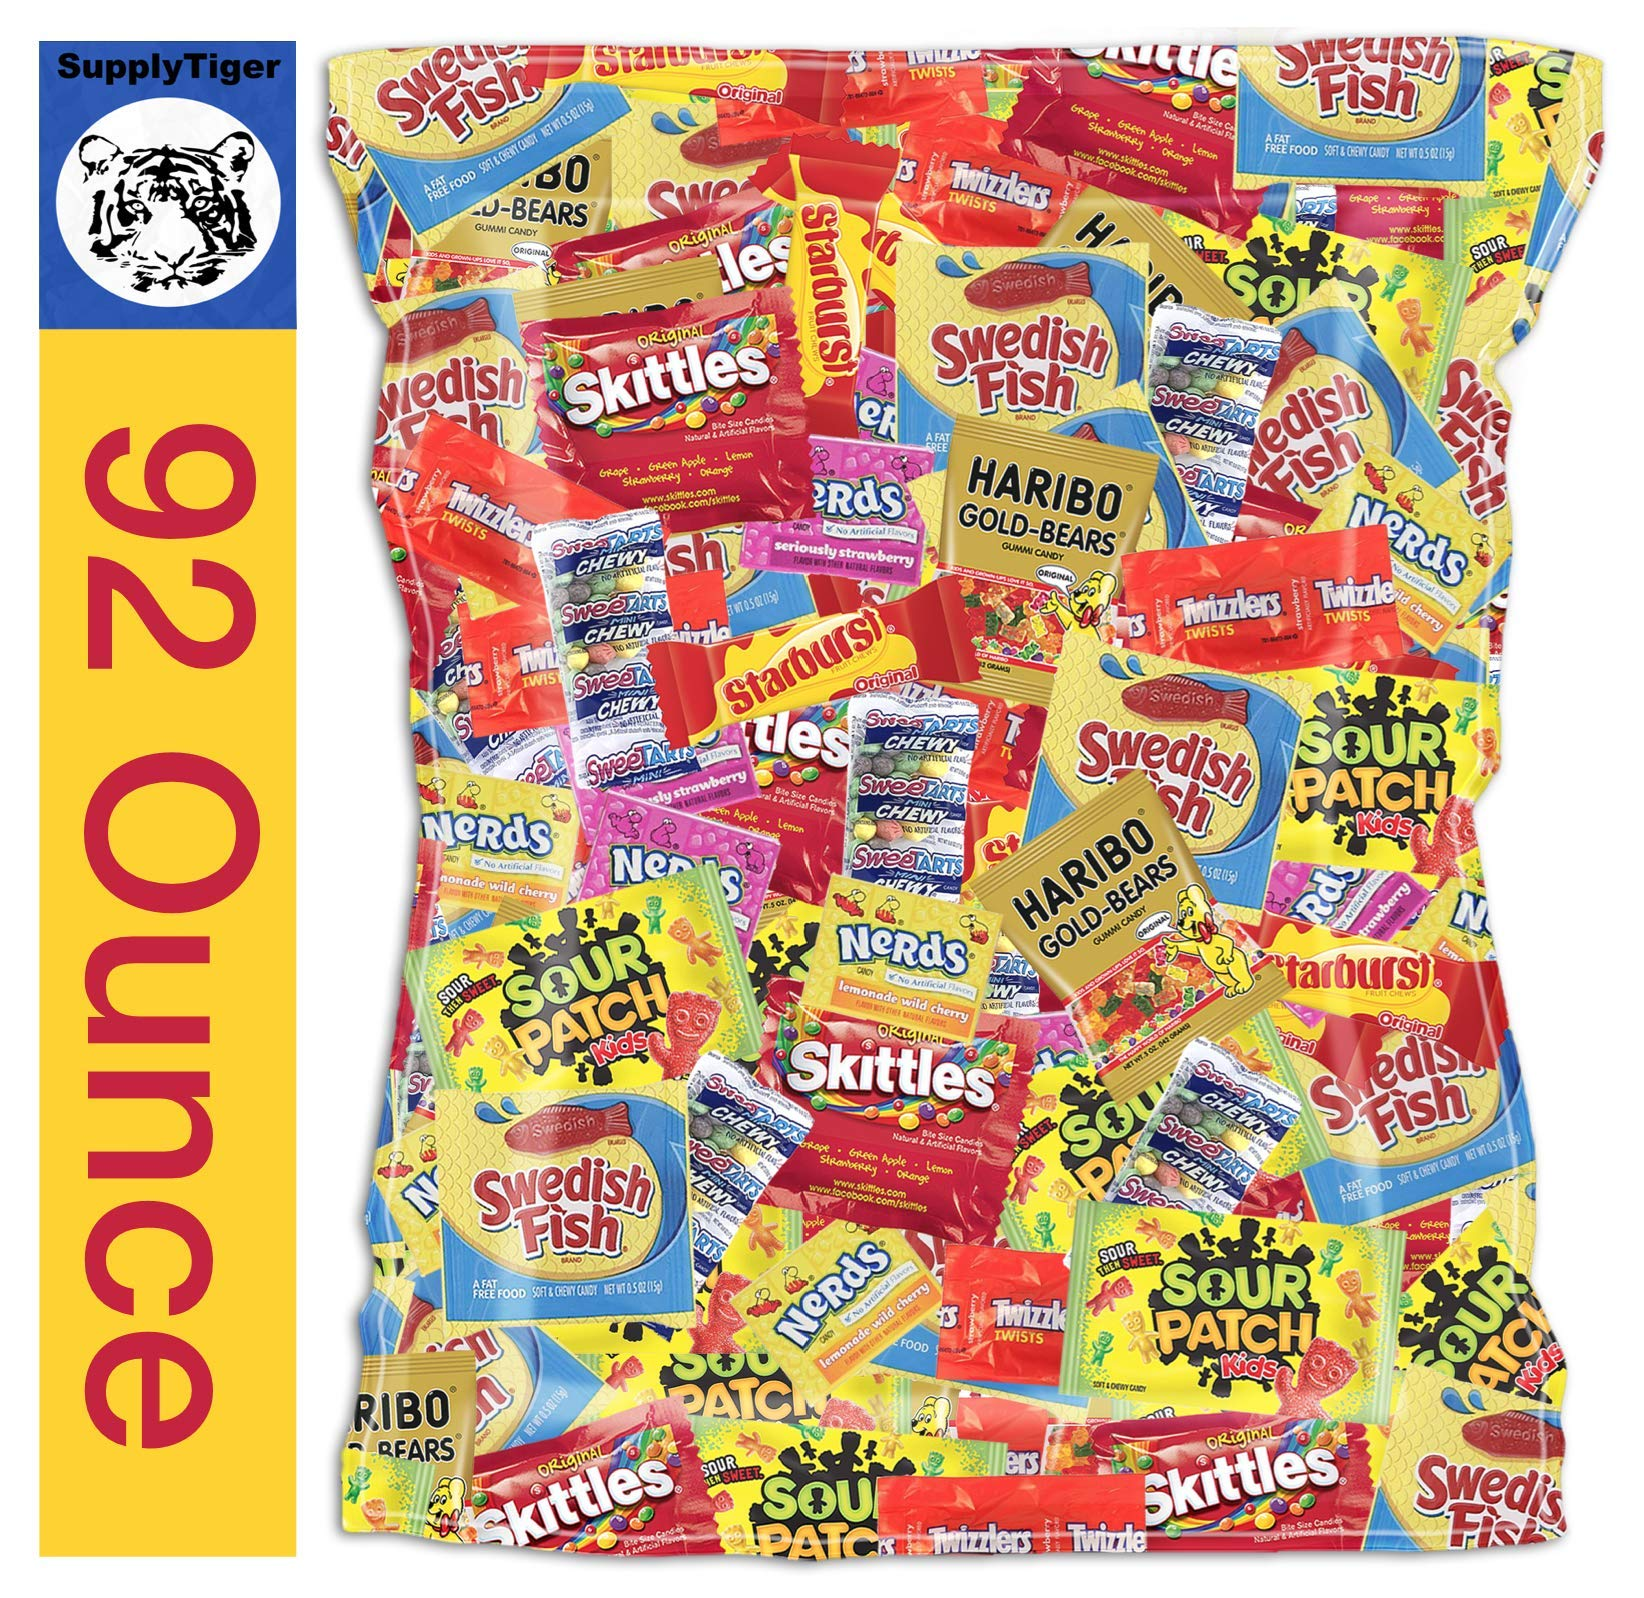 Kids Assorted Candy 92oz Pack Sour Patch Skittles Twizzlers Starburst Swedish Fish Haribo Gummy Bears Party Bags, Gifts, and Office Snacks